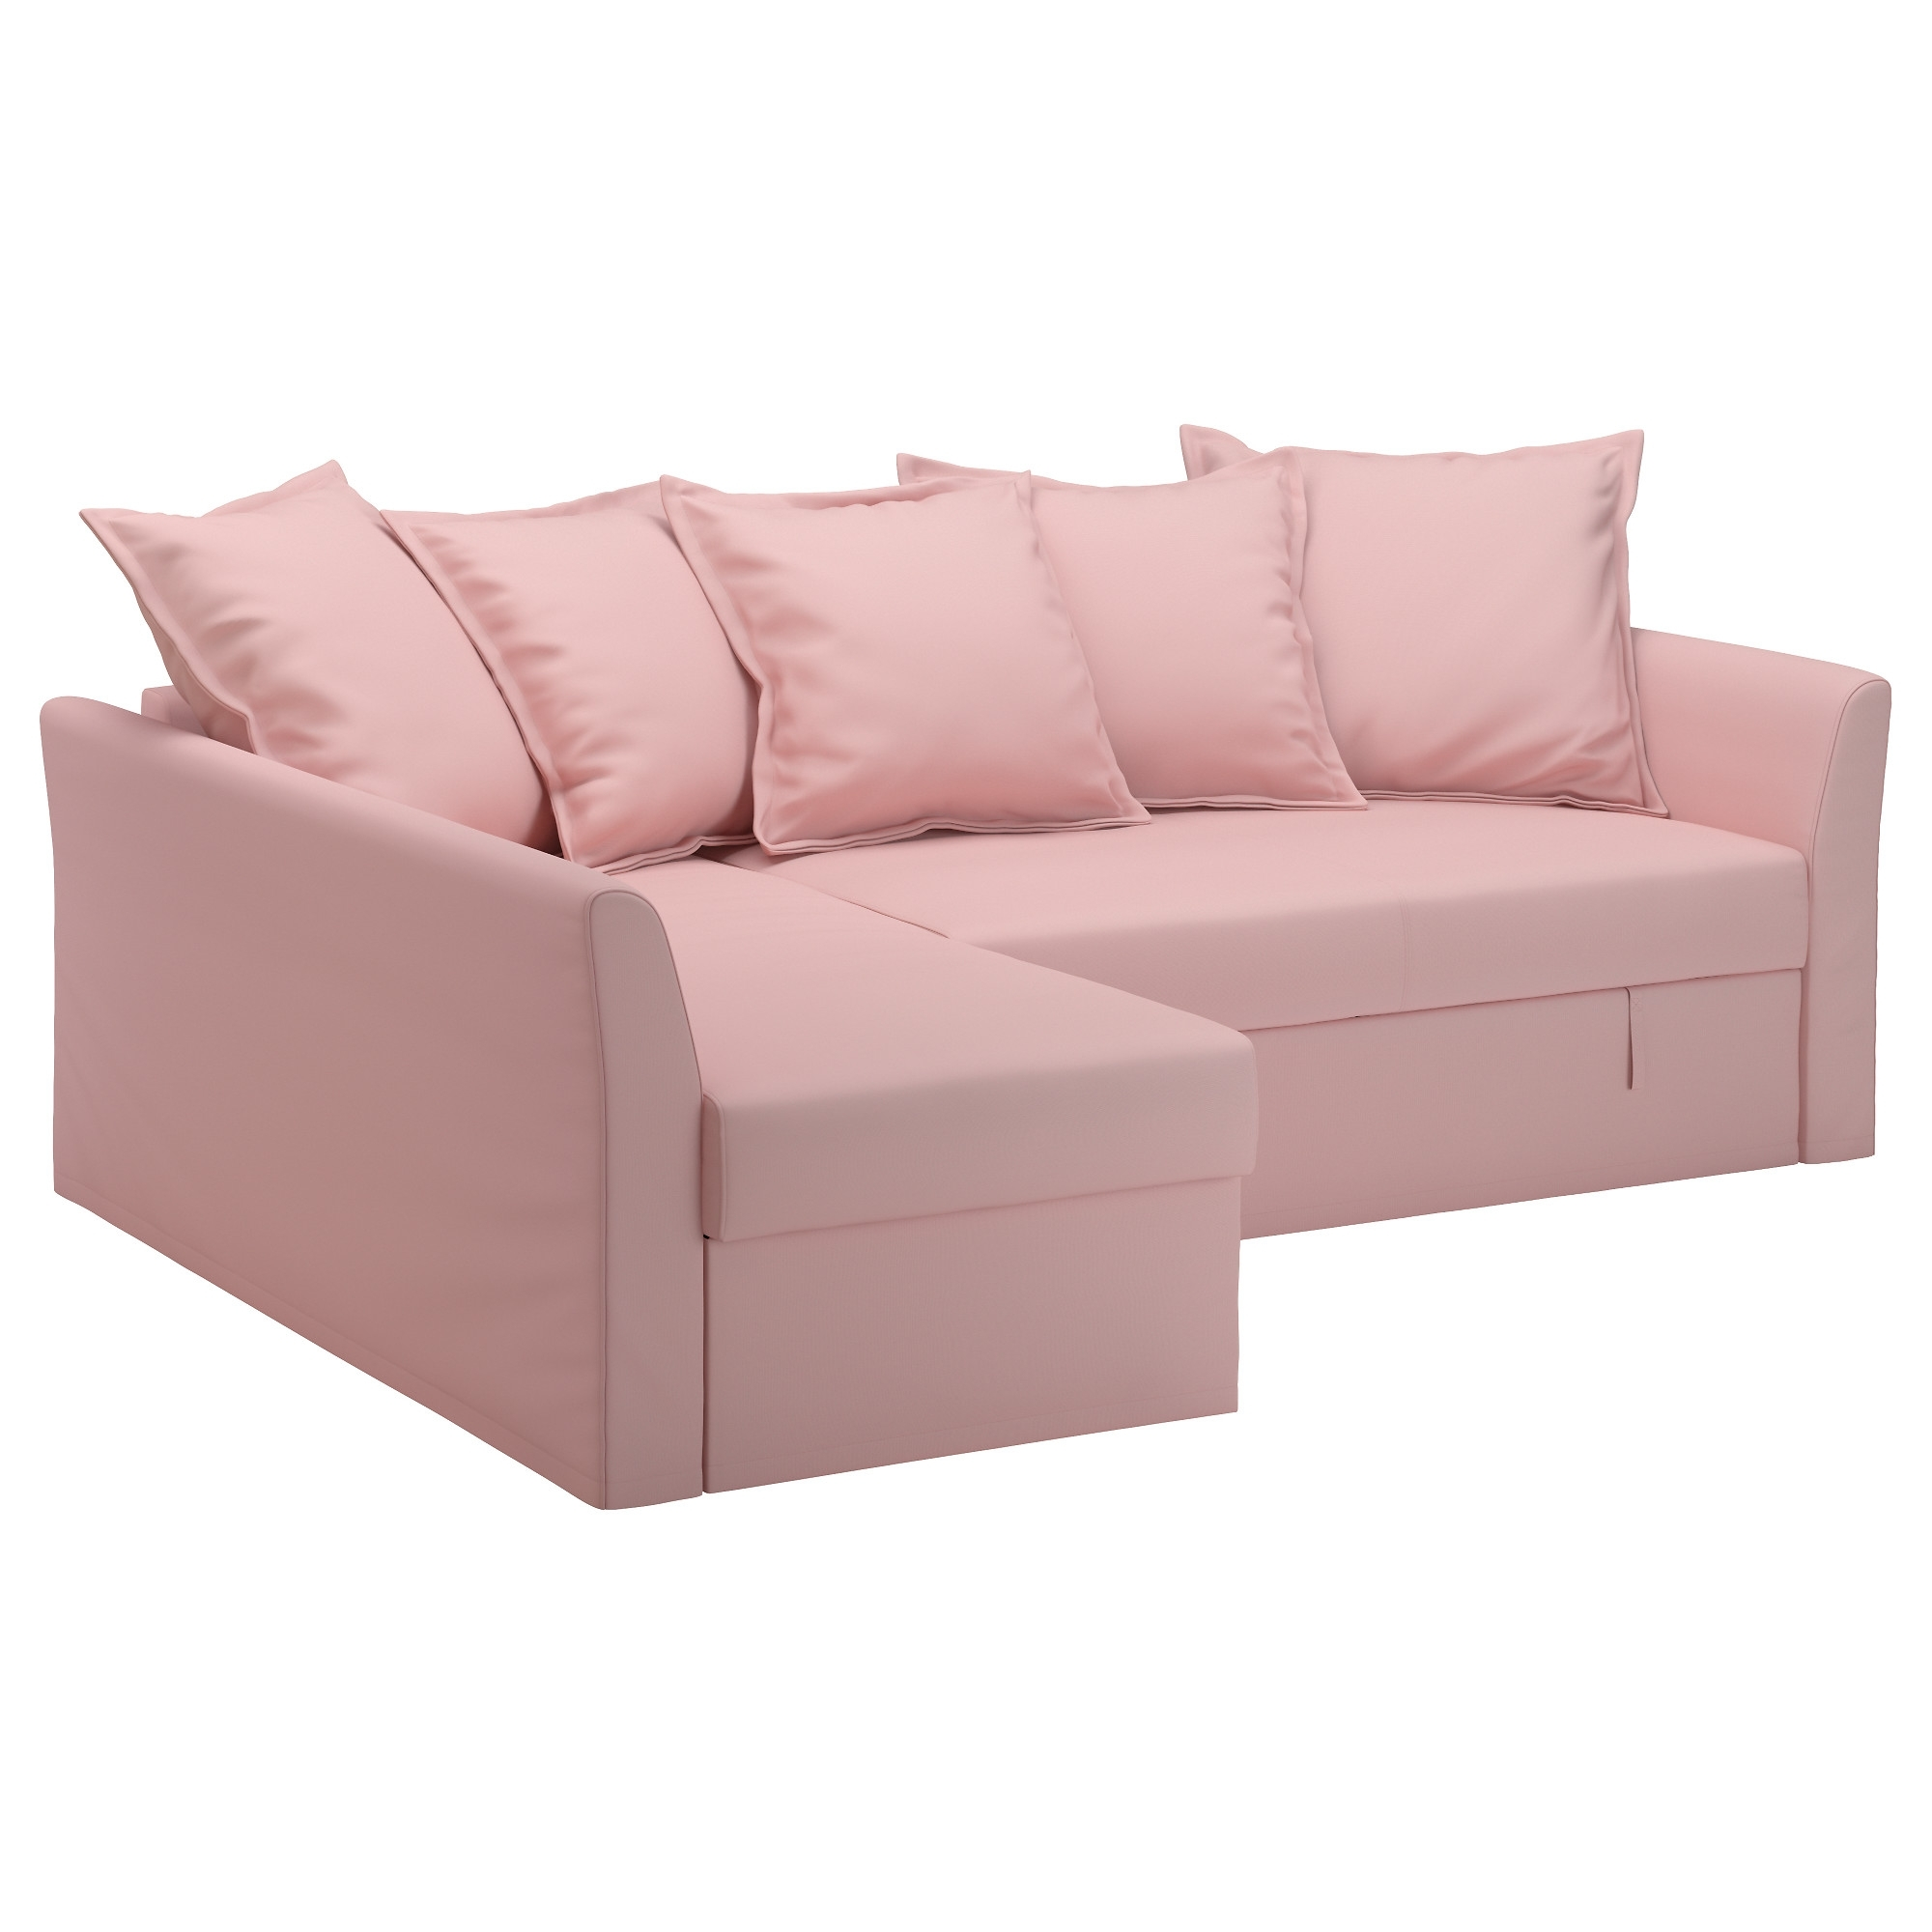 Chaise Lounge Sofa Beds Throughout Famous Ikea – Holmsund, Sofa Bed With Chaise, Ransta Light Pink, , Cover (View 2 of 15)